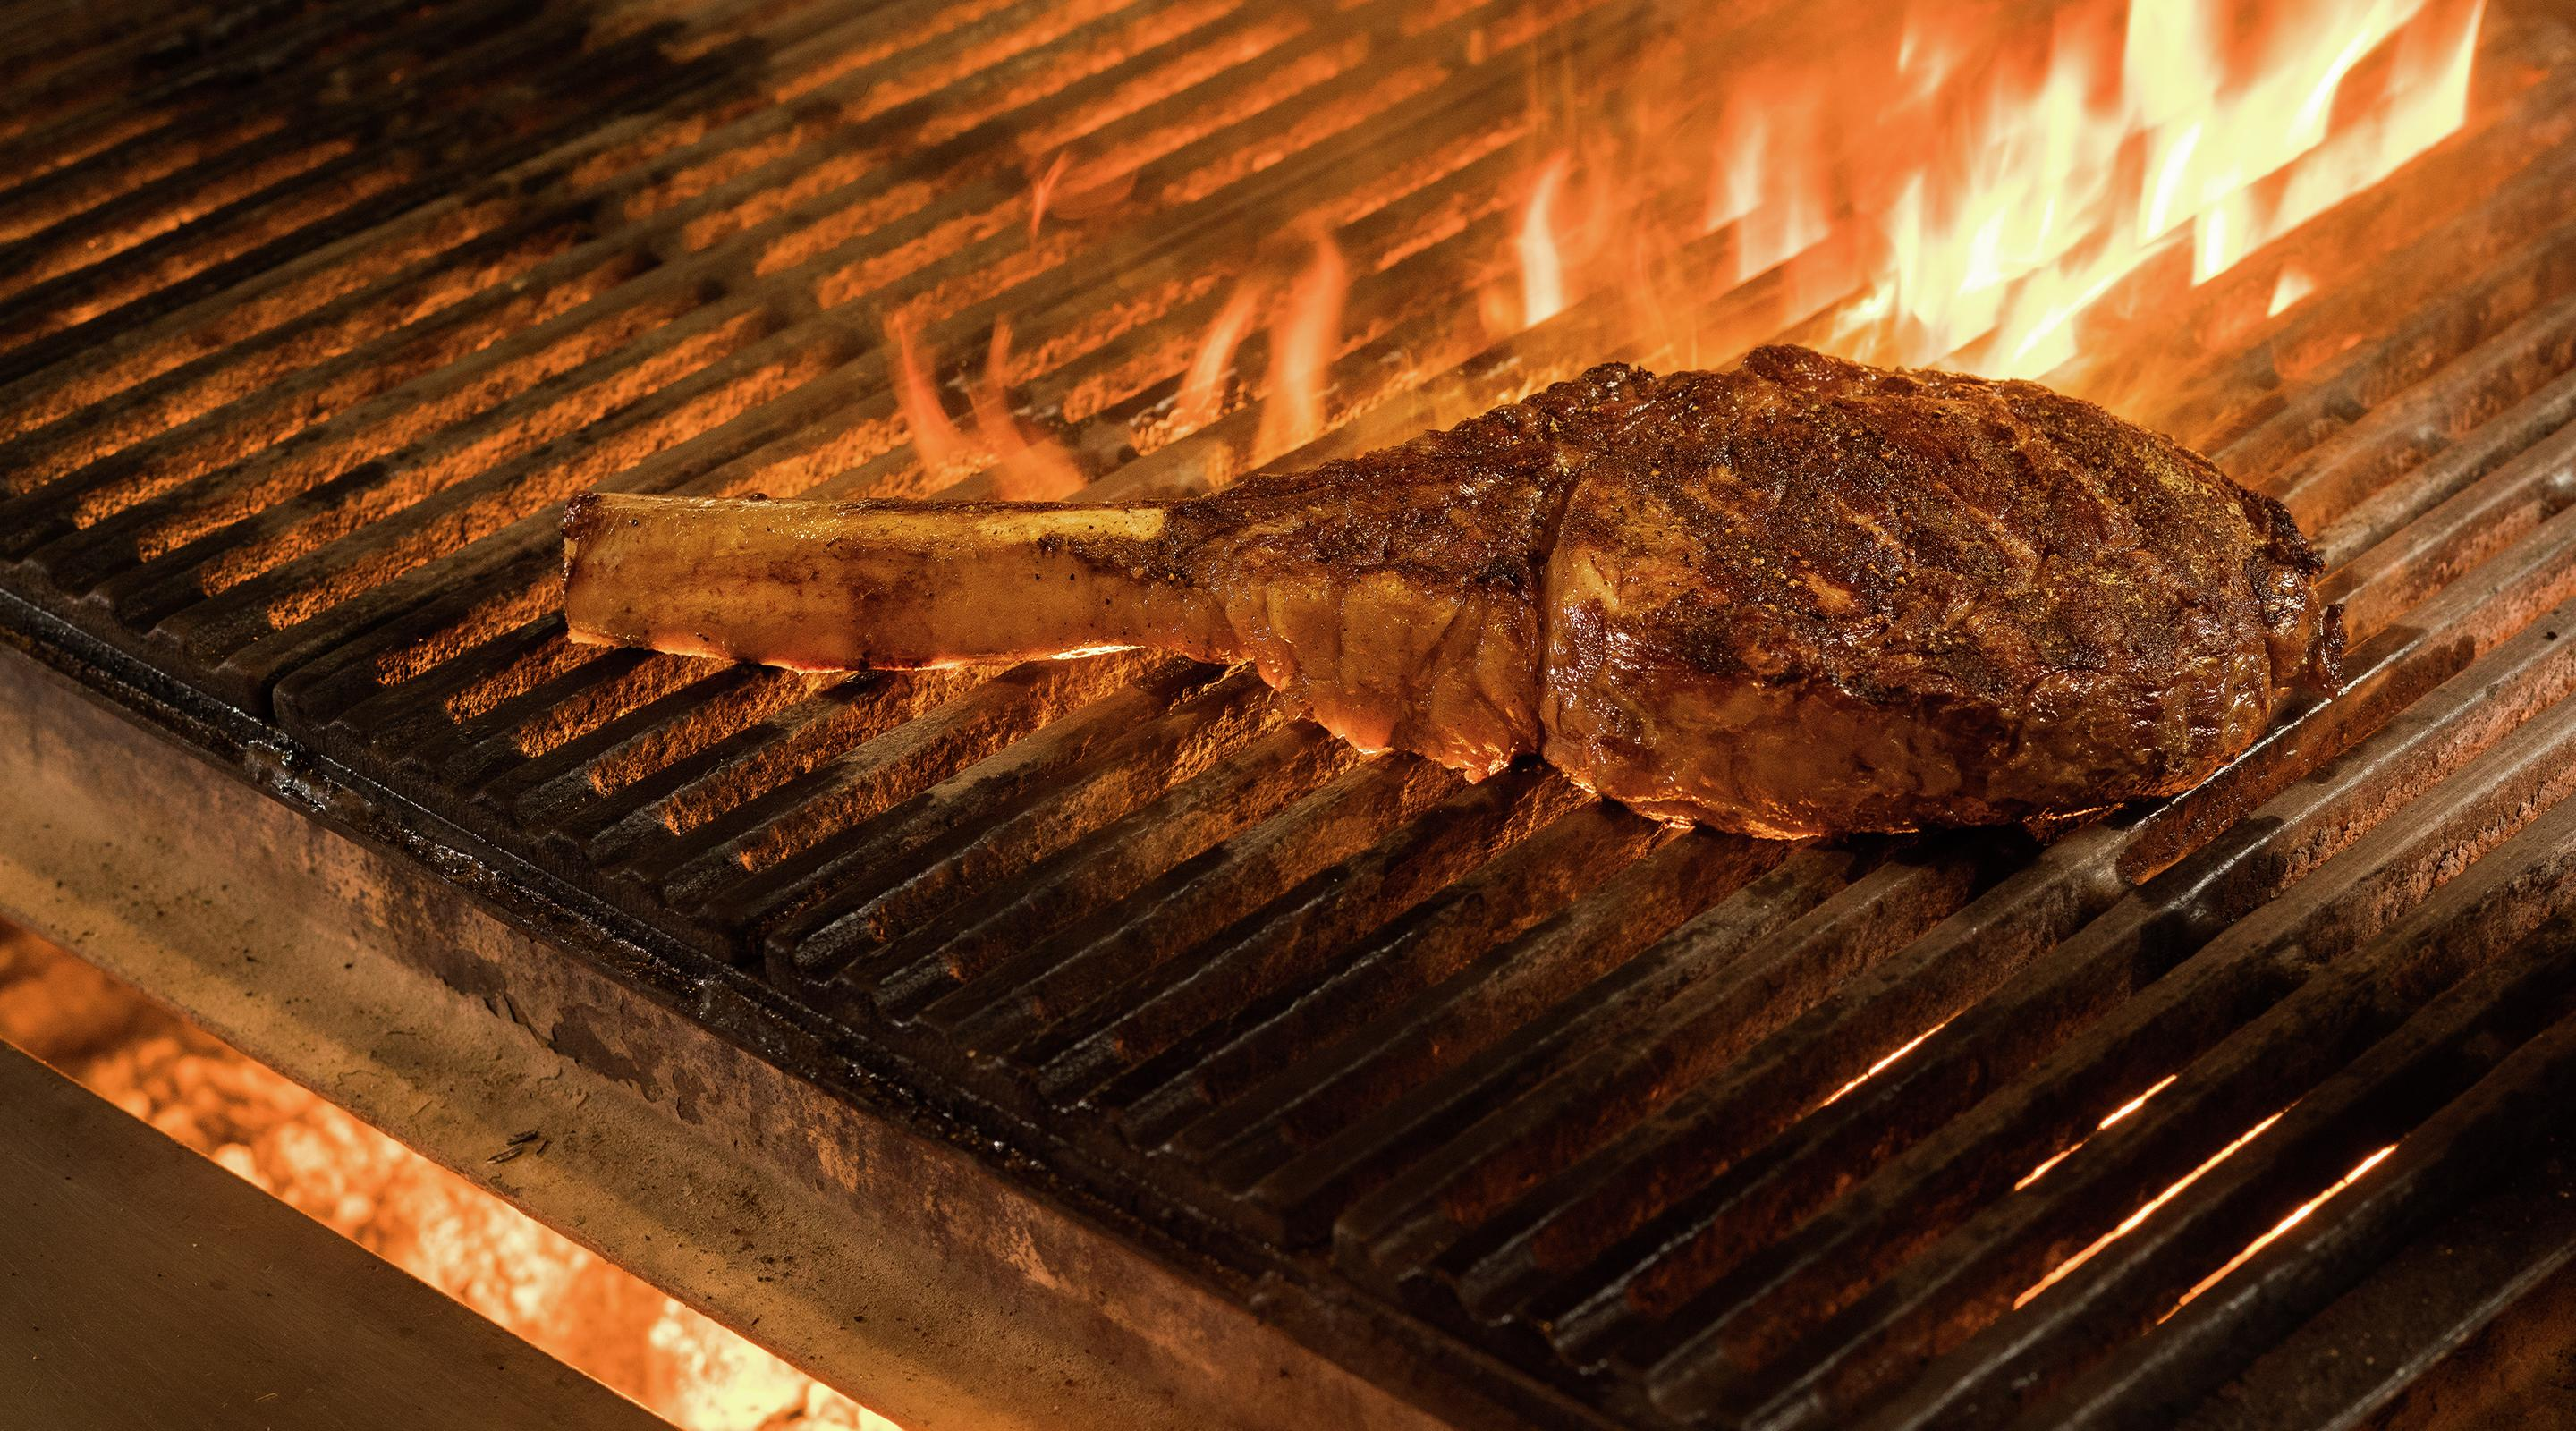 Enjoy the aromas of STRIPSTEAK as they cook over an open flame.